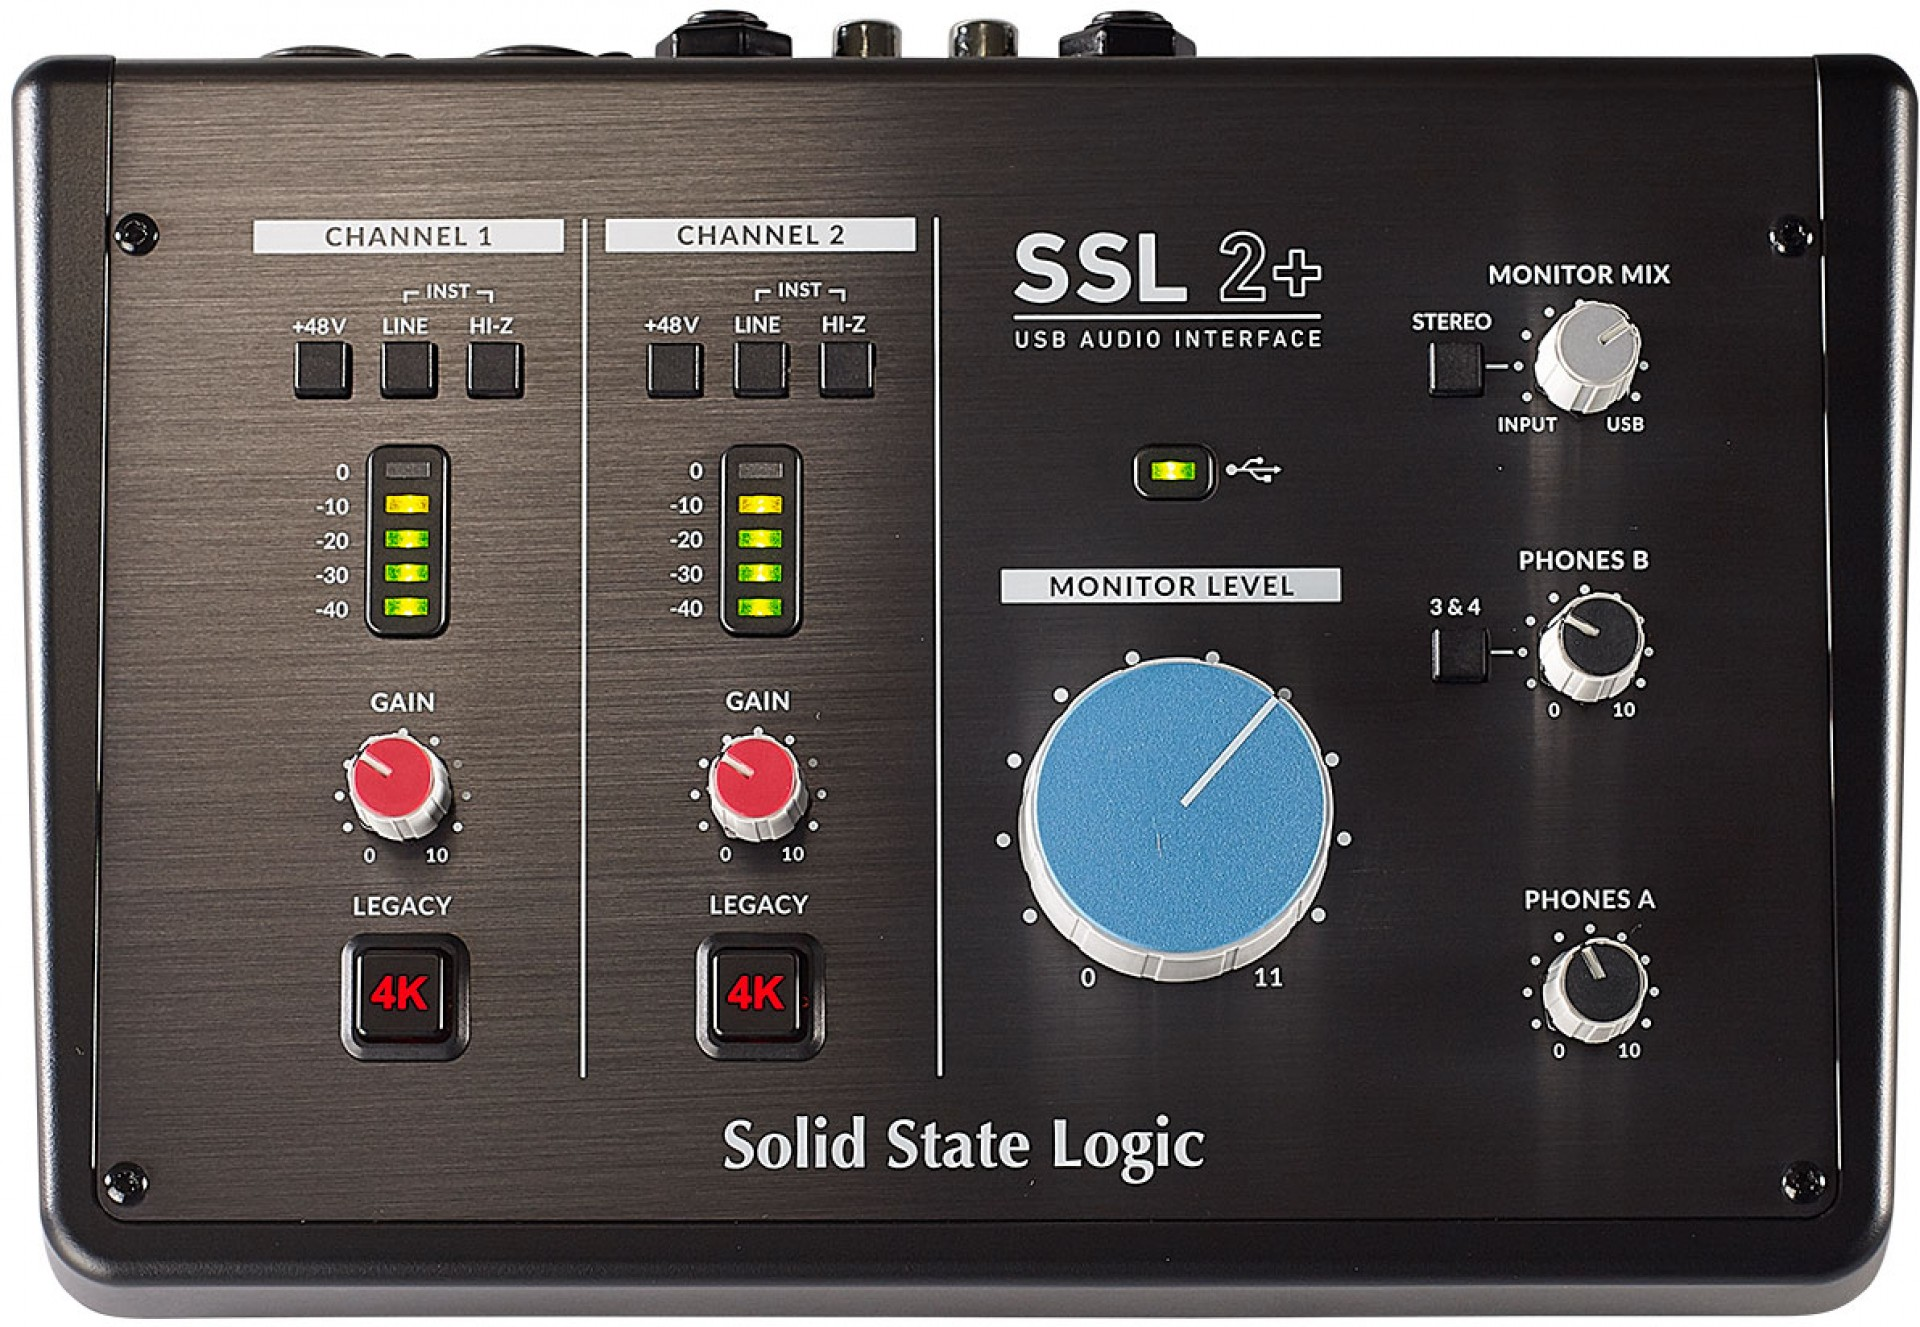 SSL SSL2+ USB AUDIO INTERFACE